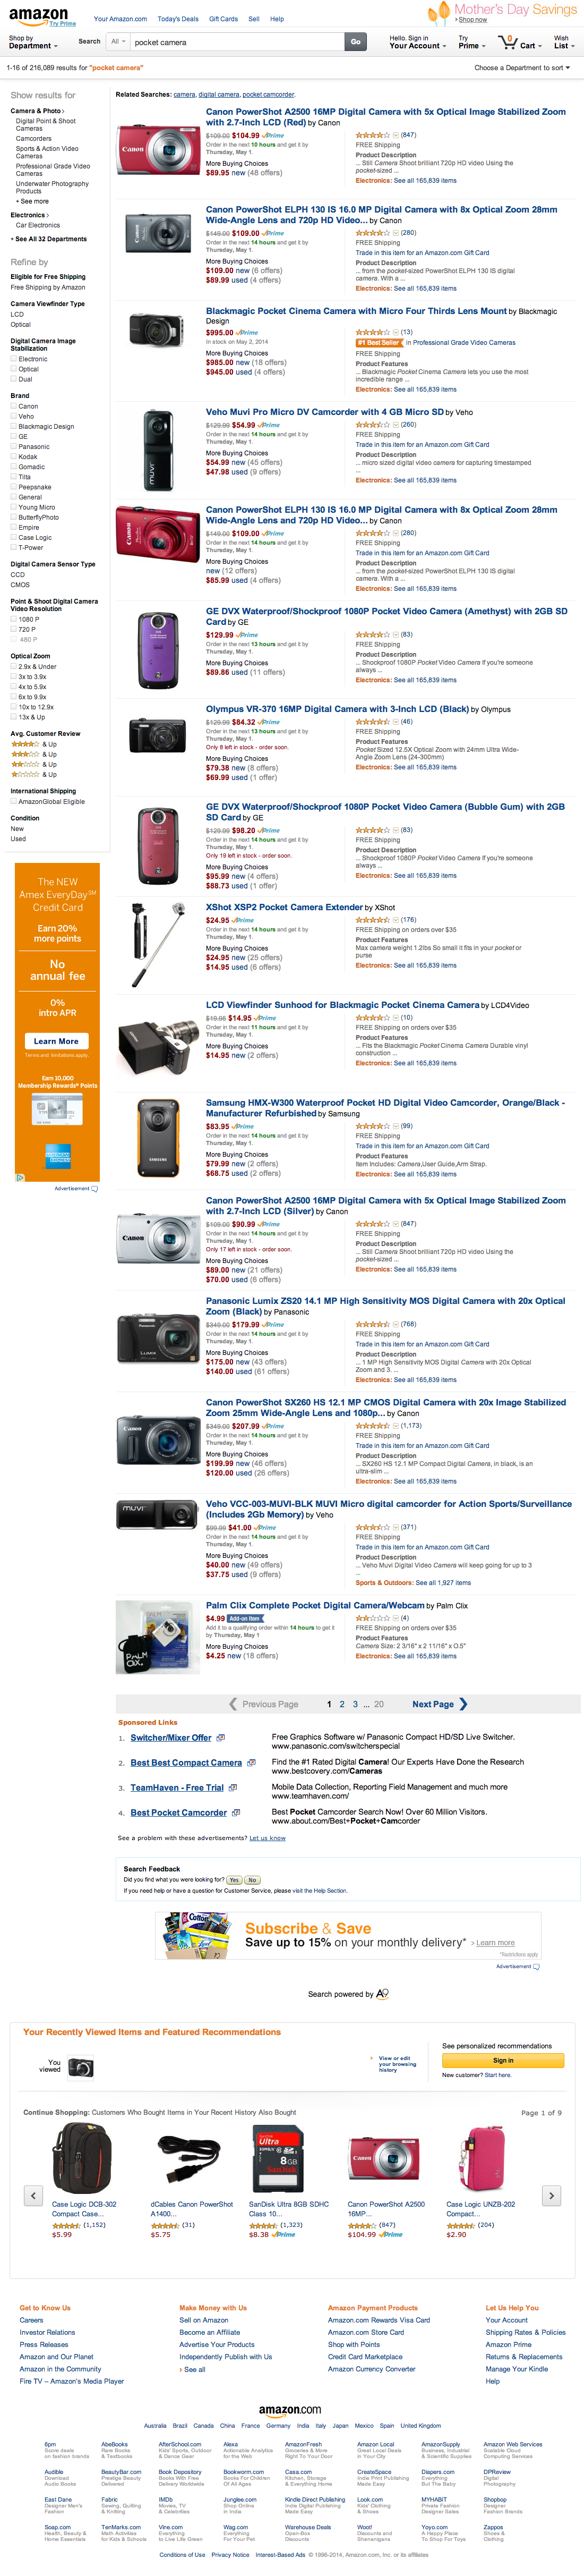 Amazon's Search Results Page